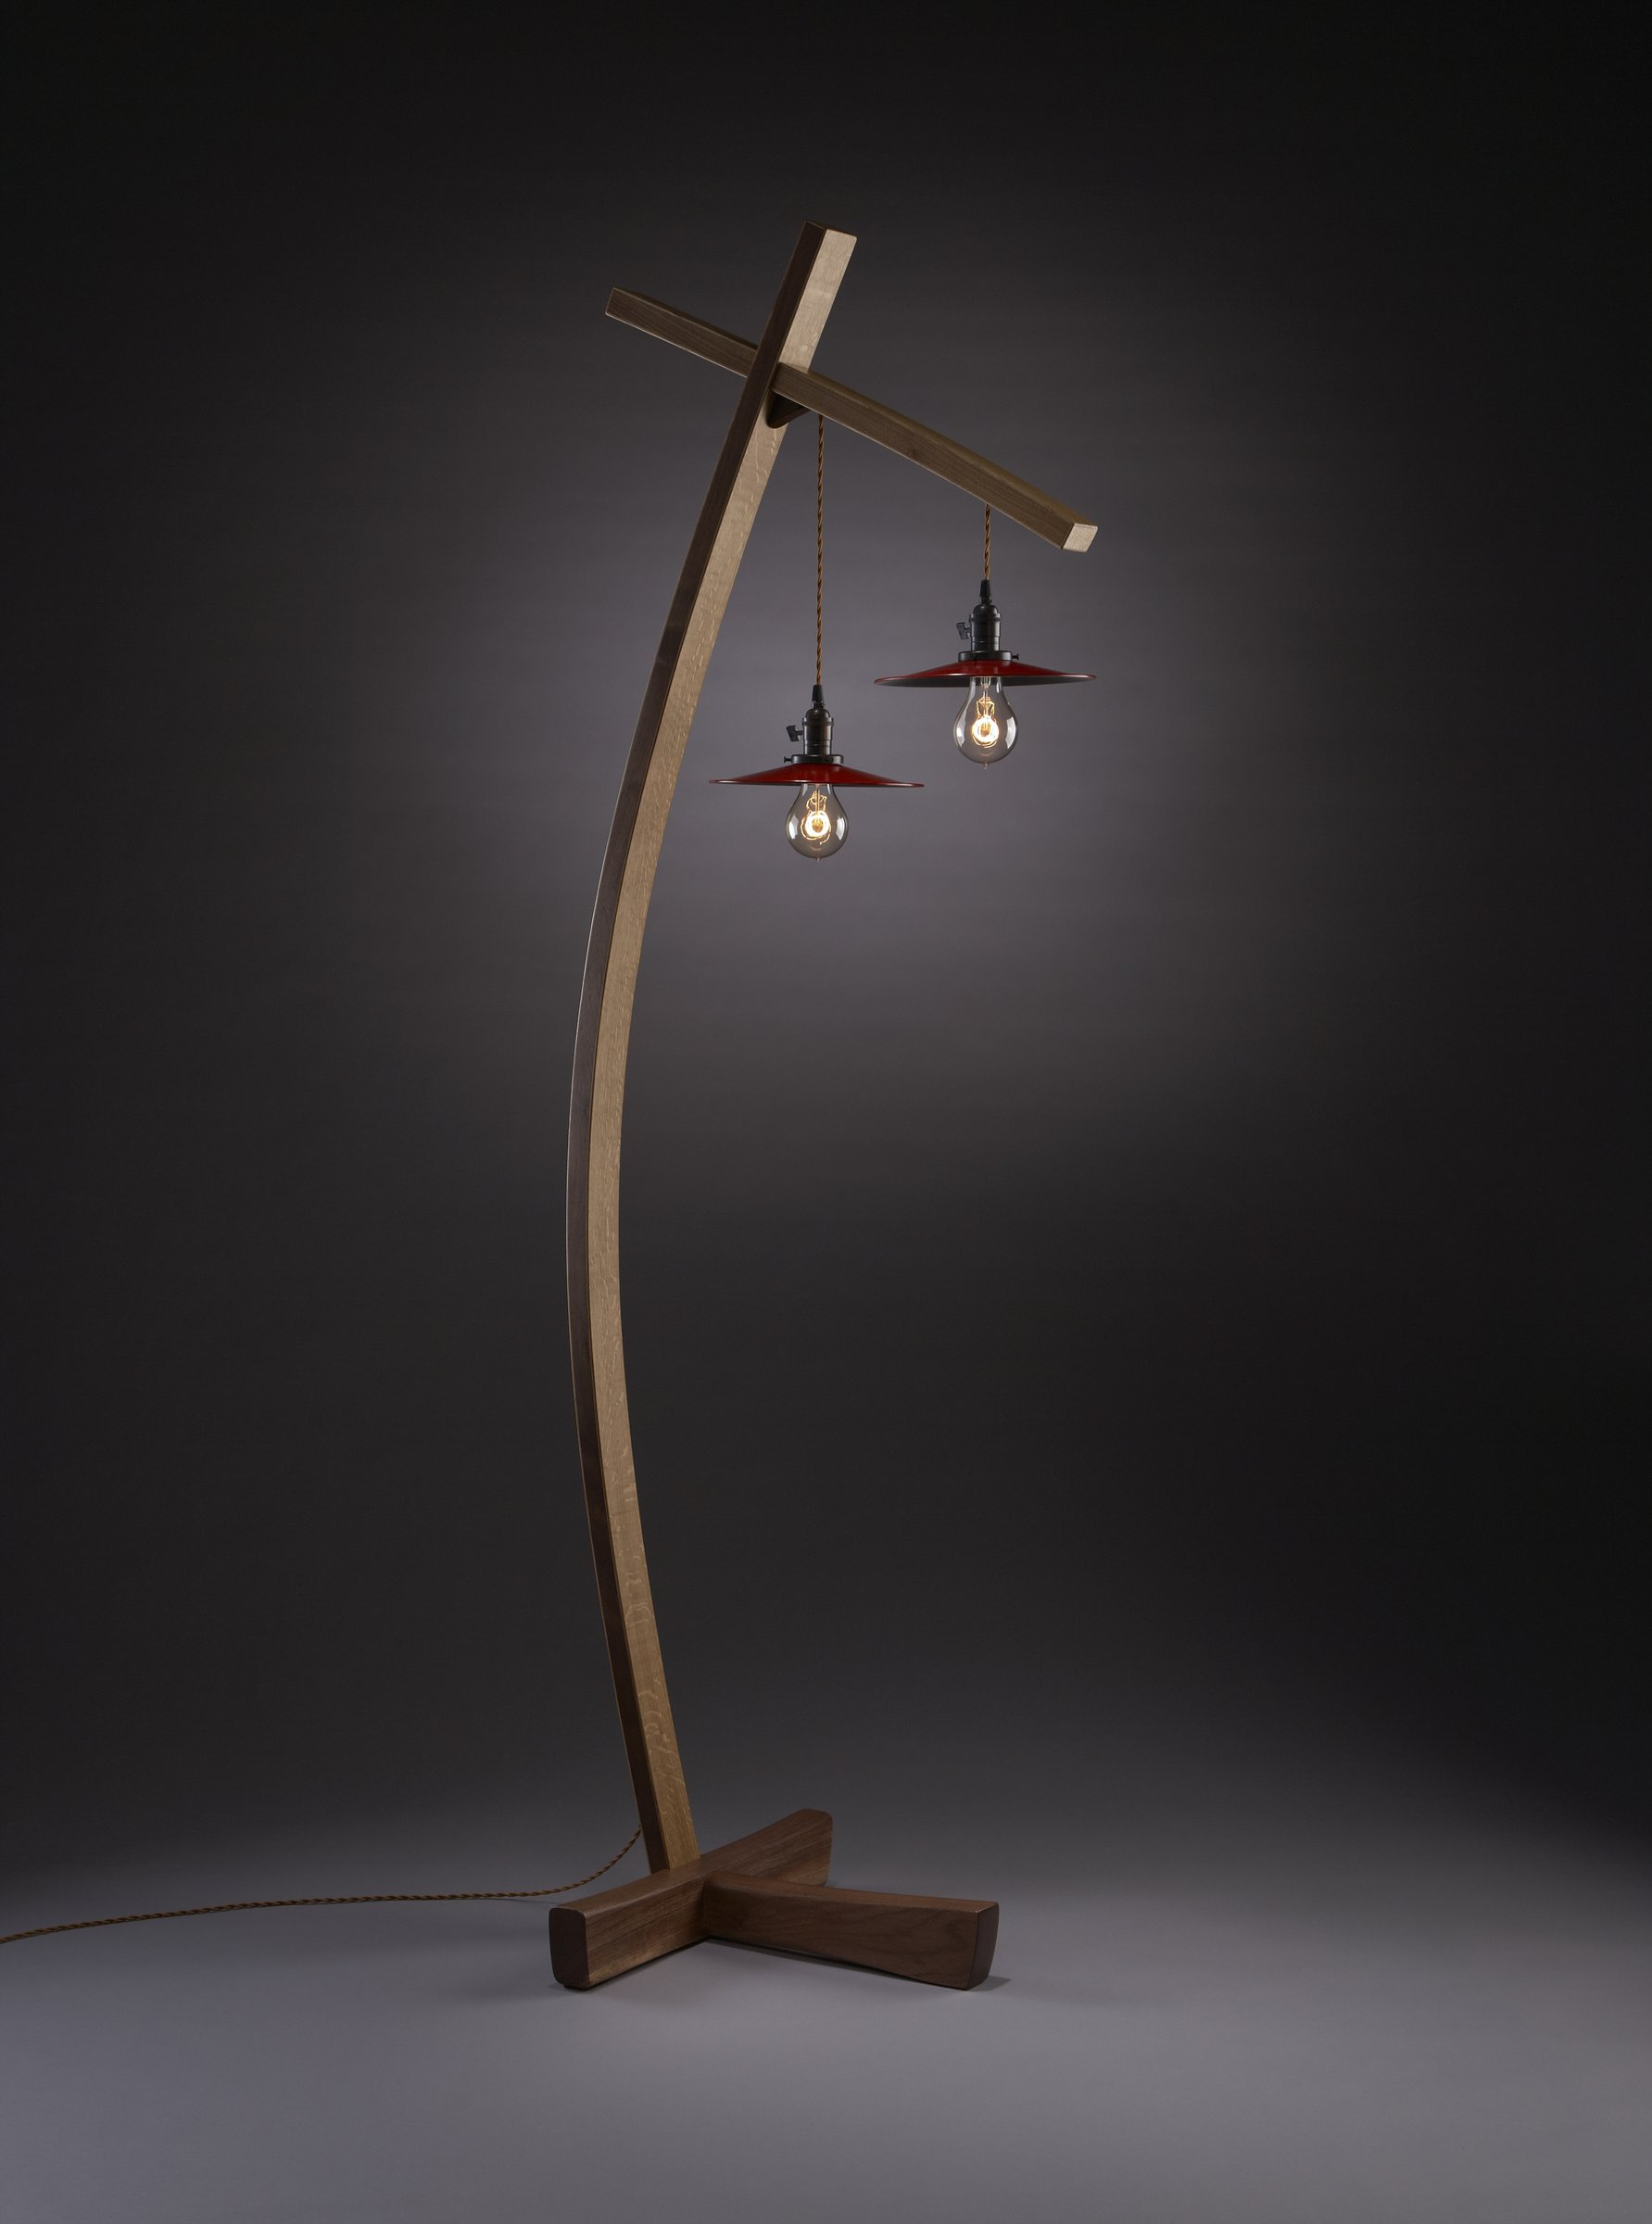 Twice Aglow by Brian Hubel (Wood Floor Lamp) | Artful Home